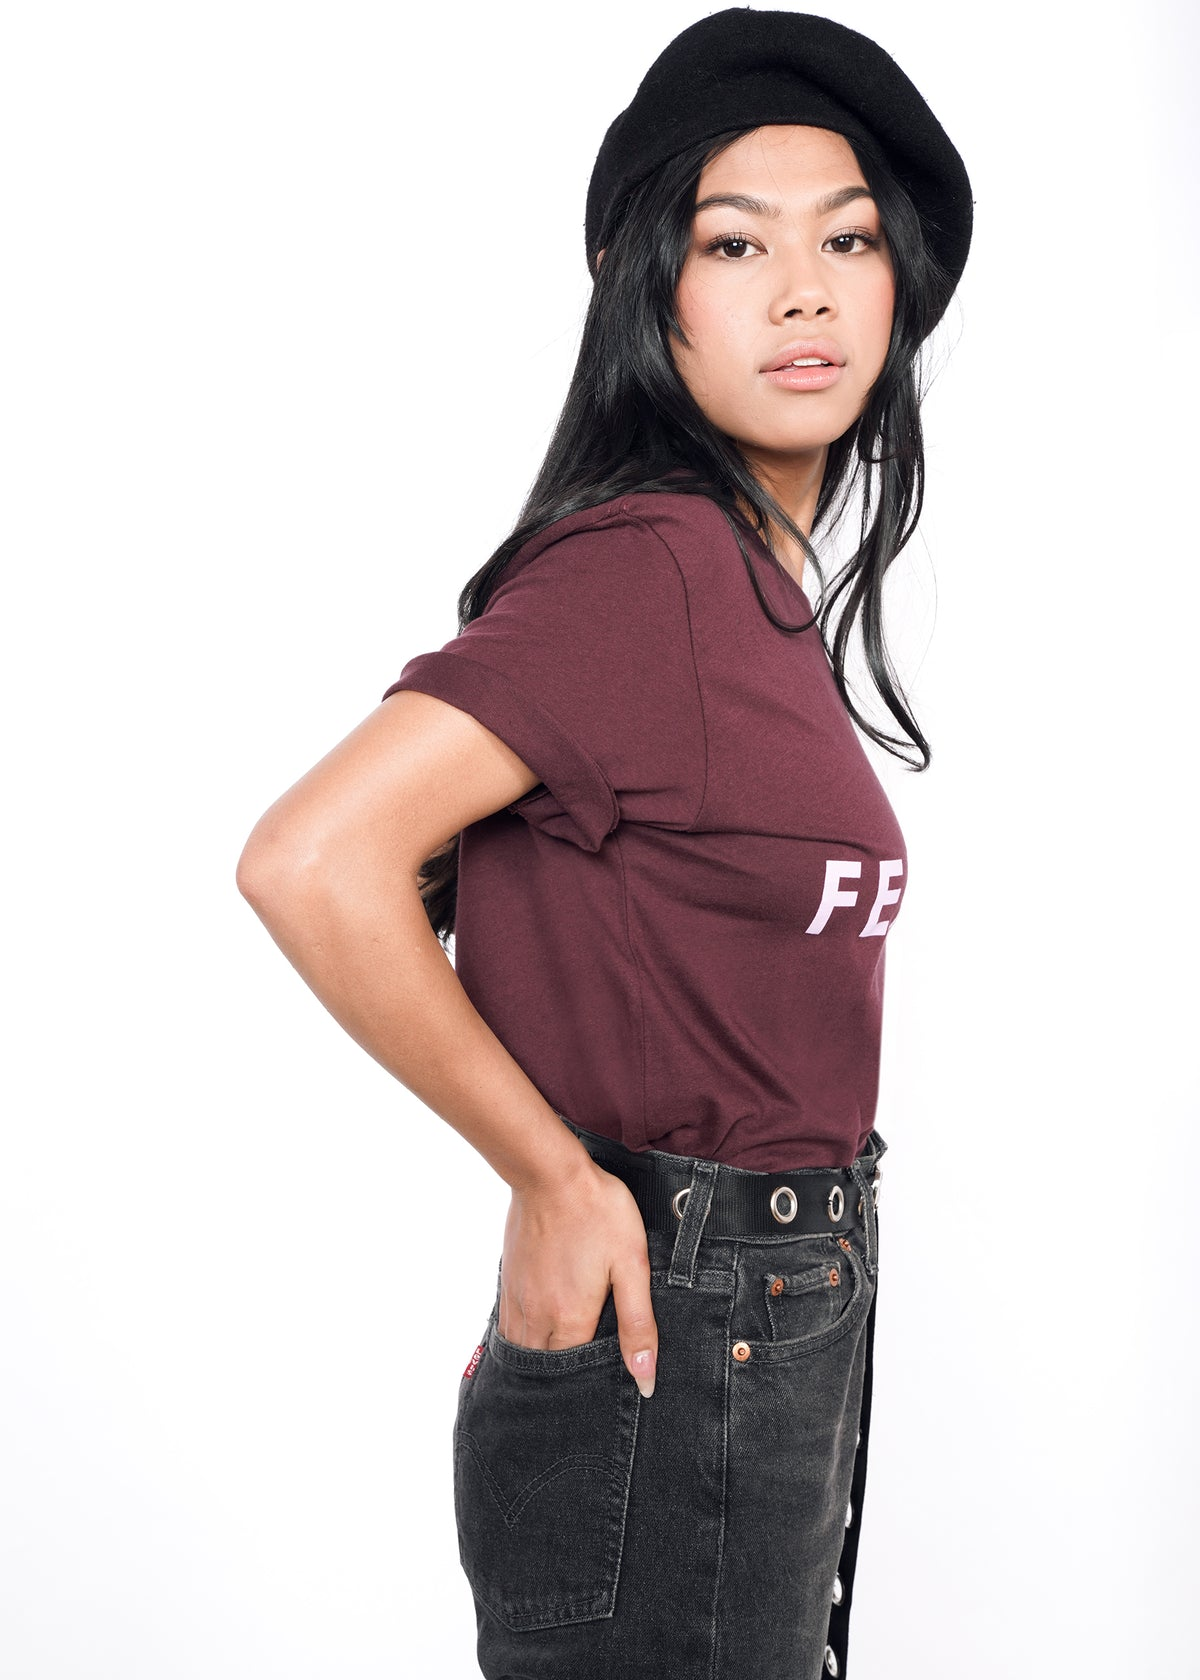 Side view of model wearing burgundy merlot graphic tee in size XS, with hands in back pockets of black Levi's